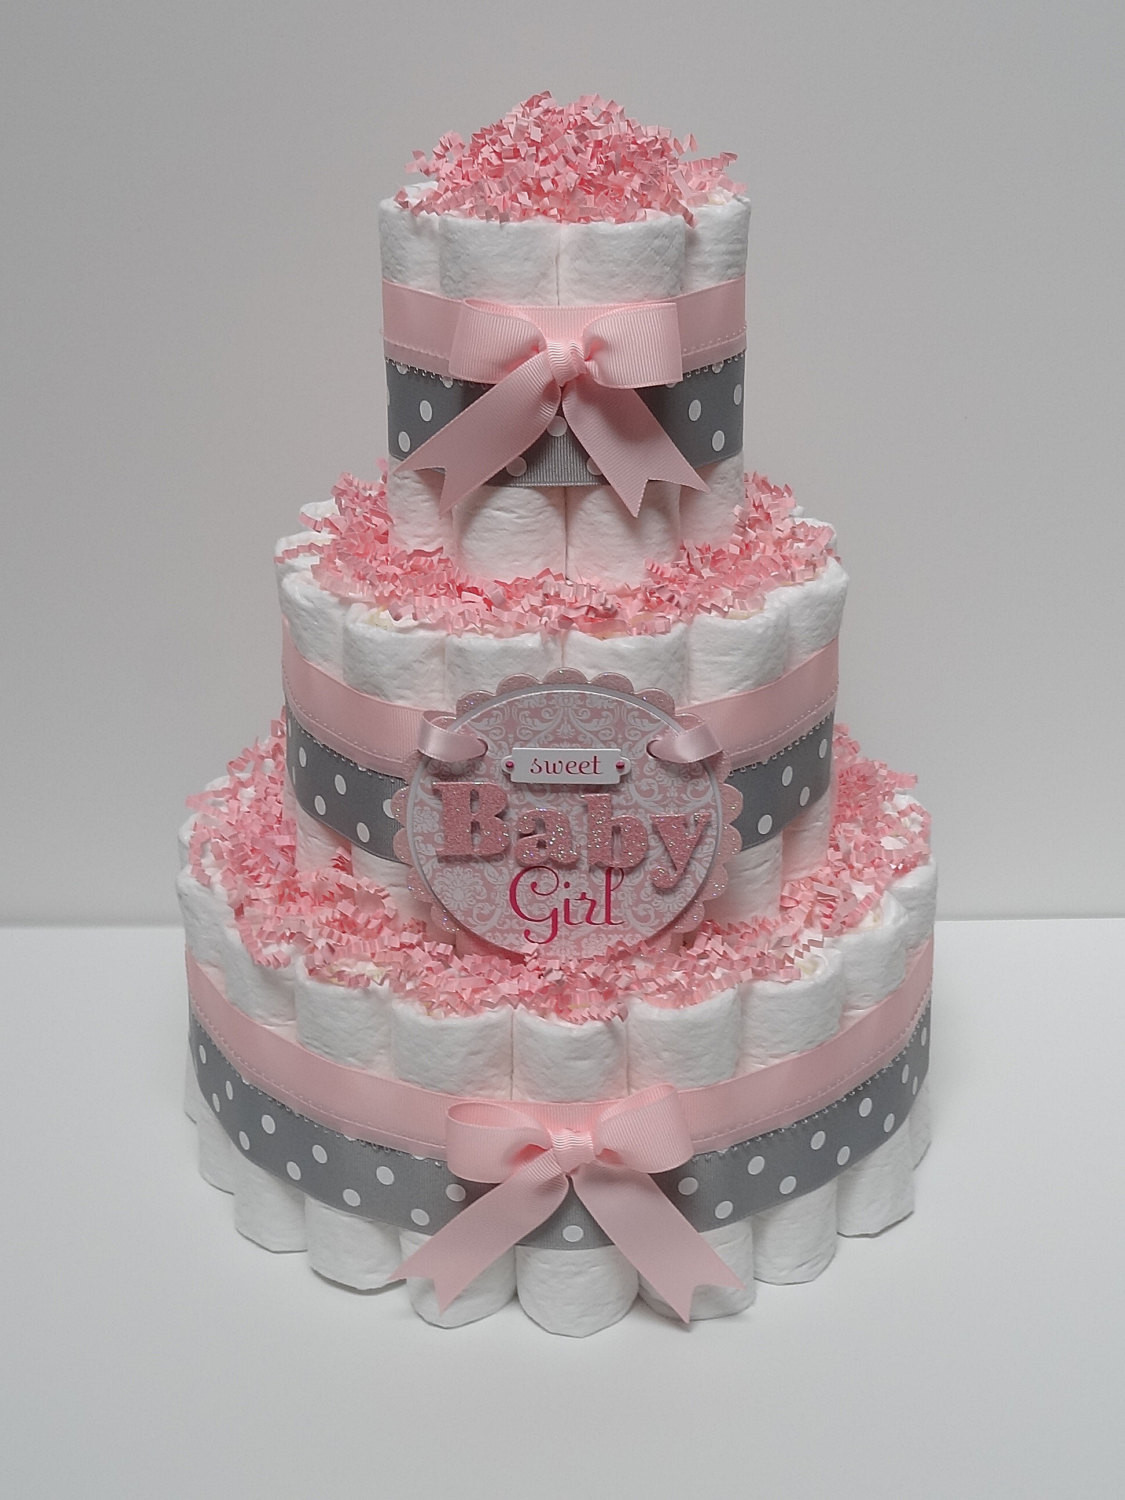 Best ideas about DIY Baby Shower Cakes . Save or Pin DIY Diaper Cakes For Baby Showers Now.